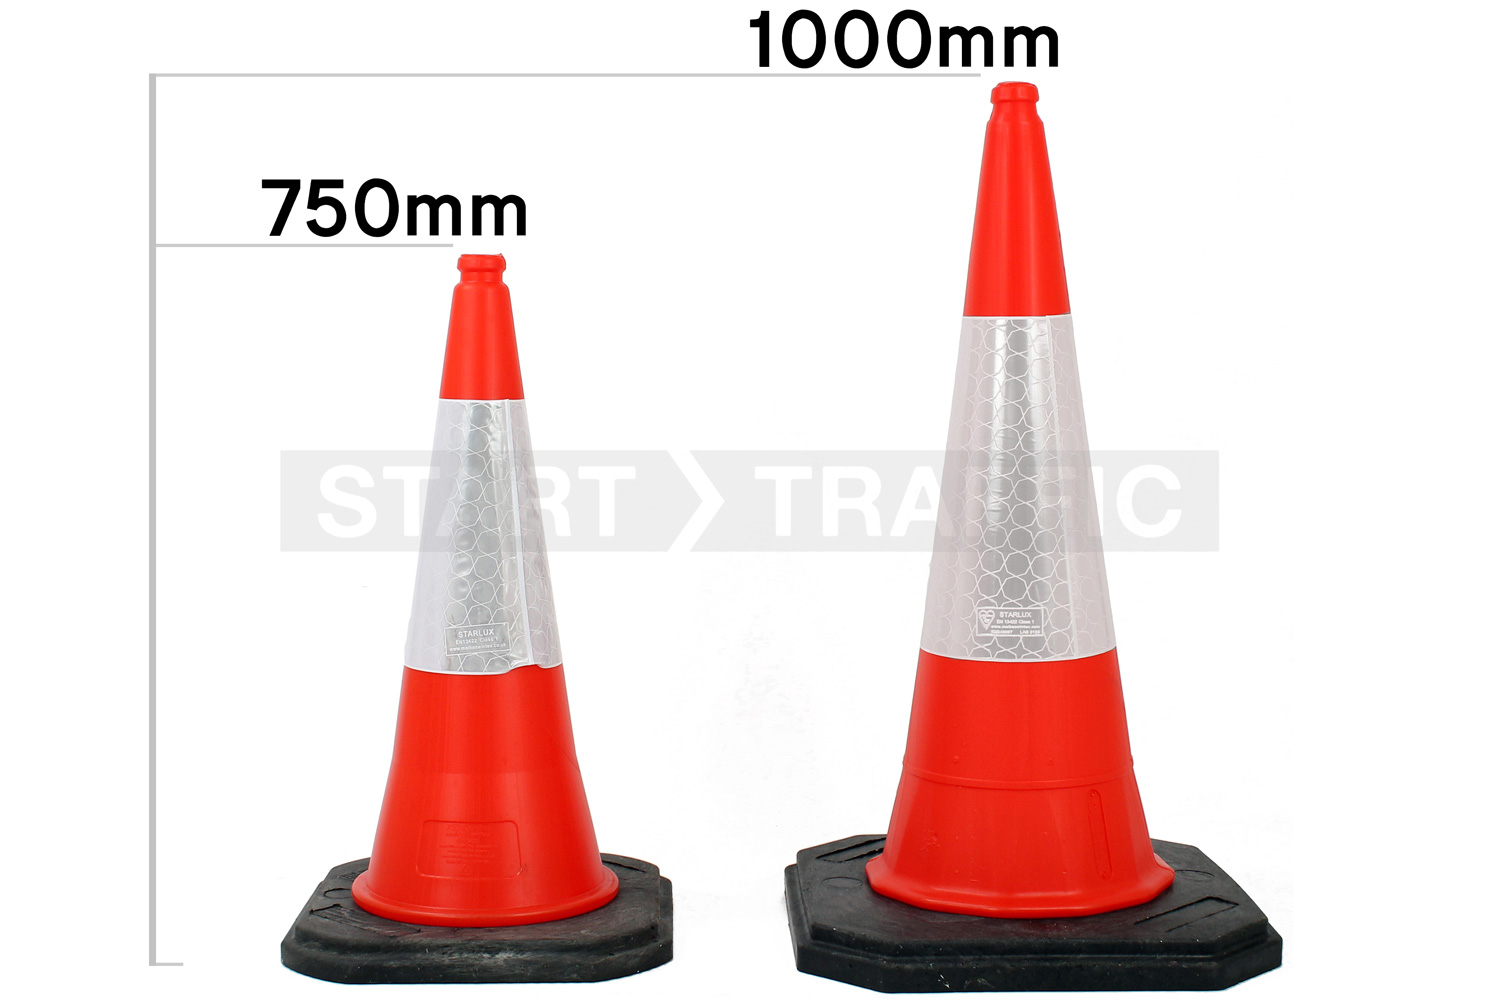 Suitable cone sizes shown